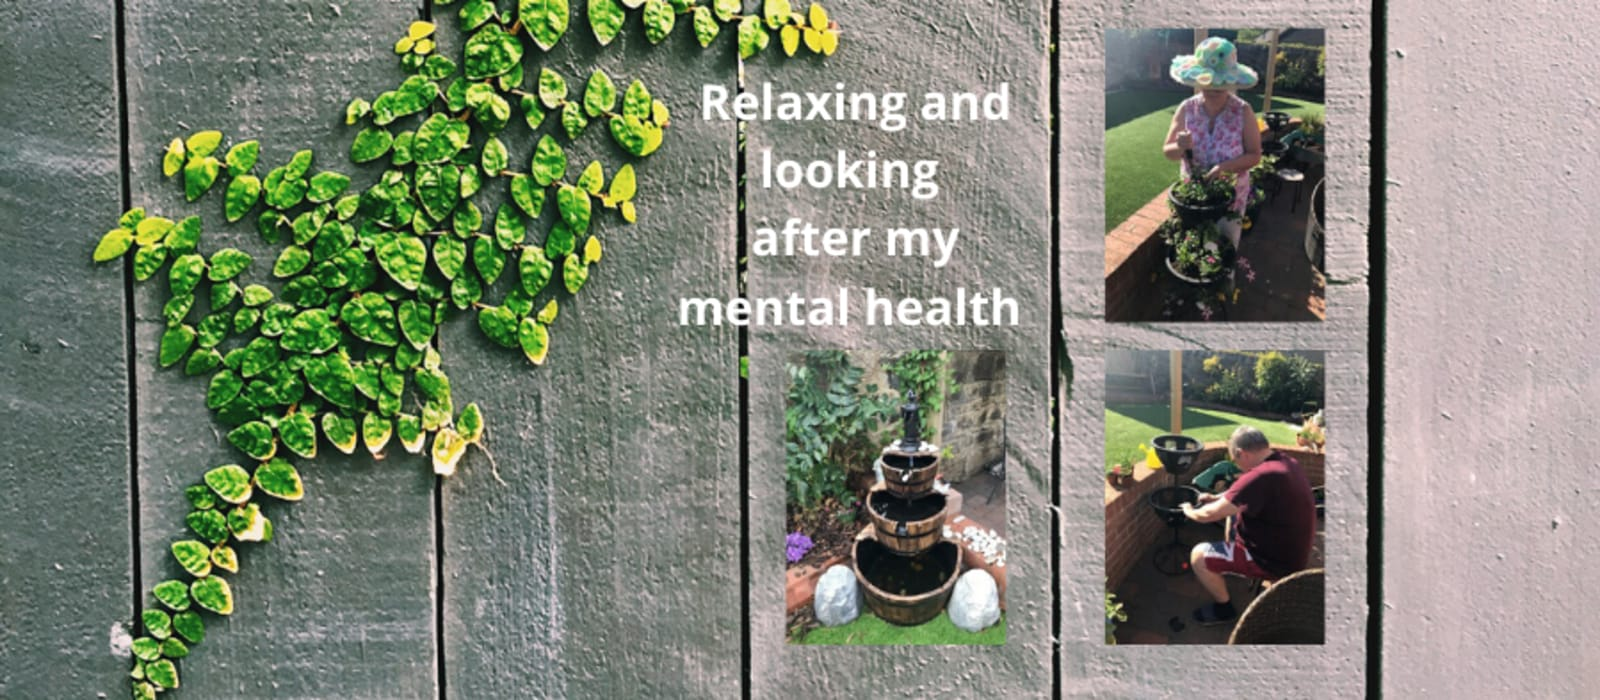 Our garden water feature has helped me relax and maintain my mental health